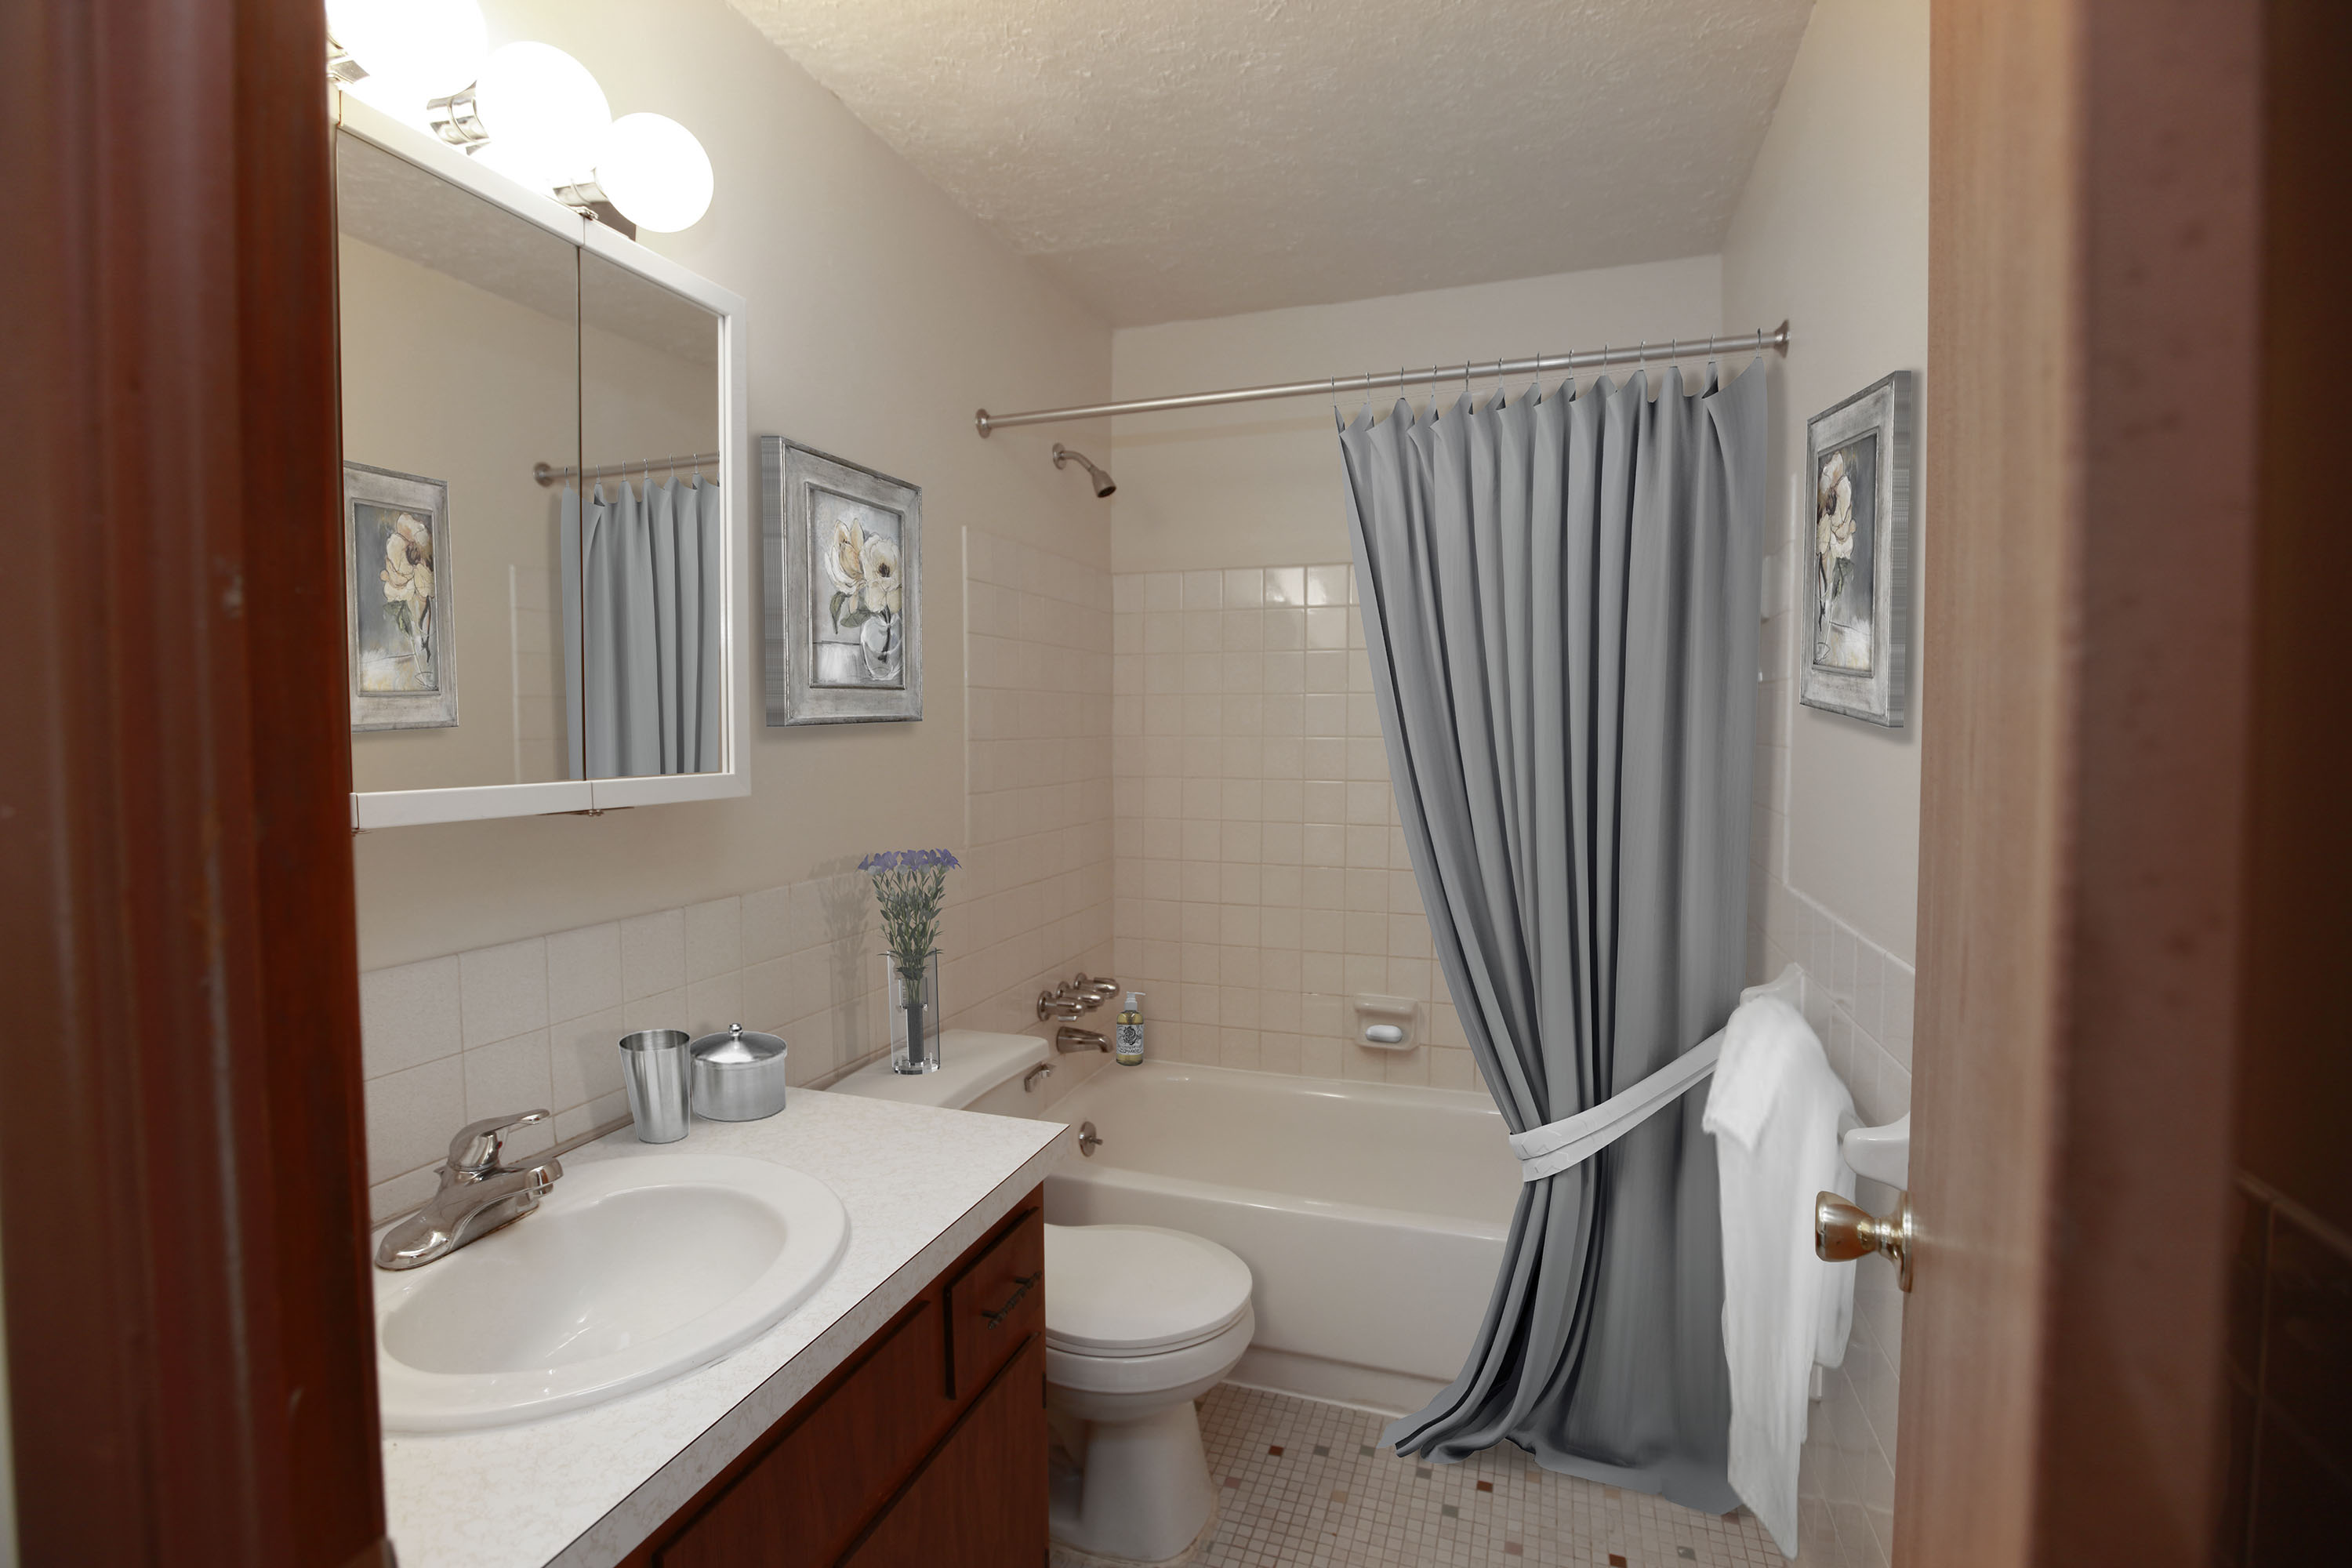 2C Bathroom at the Greenridge on Euclid Apartments in Euclid, OH